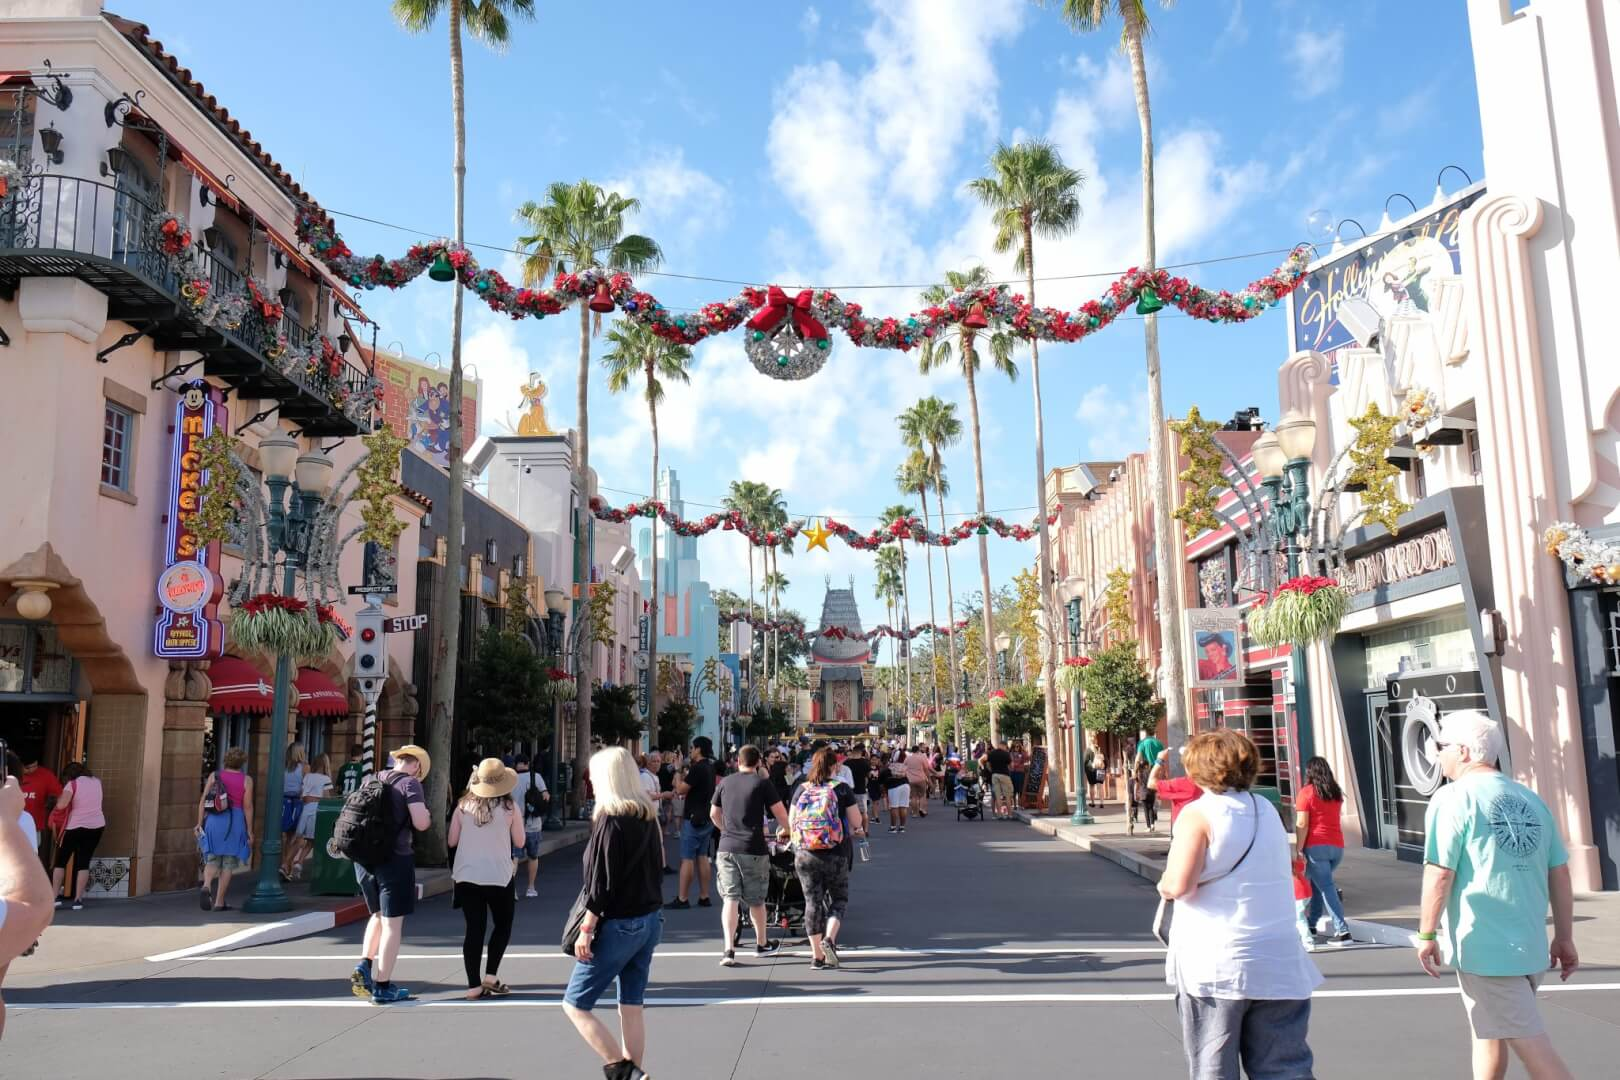 the decorations completely take over hollywood boulevard which contains wreaths decorative balls tinsel christmas trees garland and other adornments to - When Does Disney World Decorate For Christmas 2017